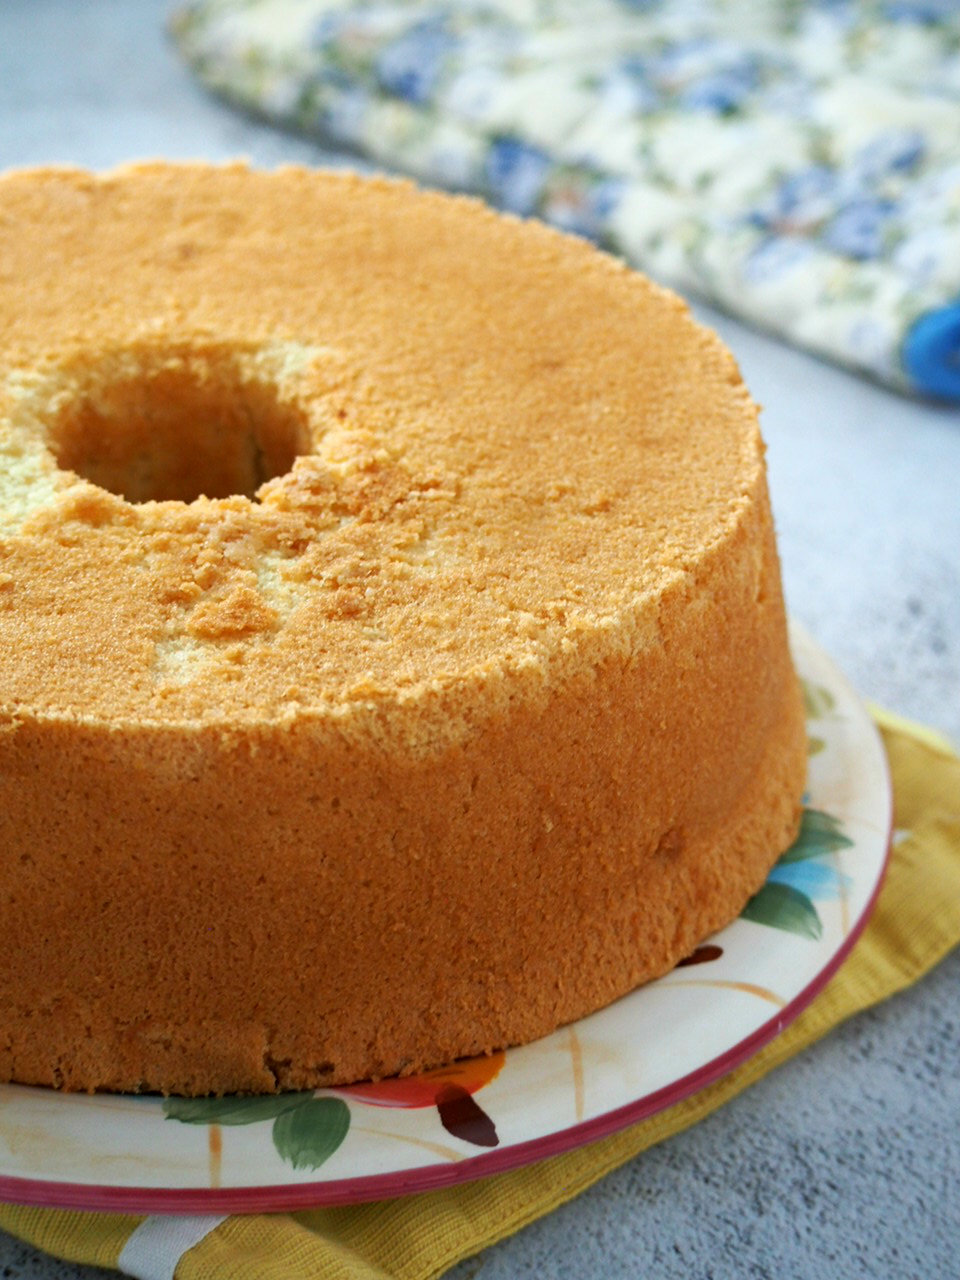 The whole vanilla chiffon cake freshly baked.